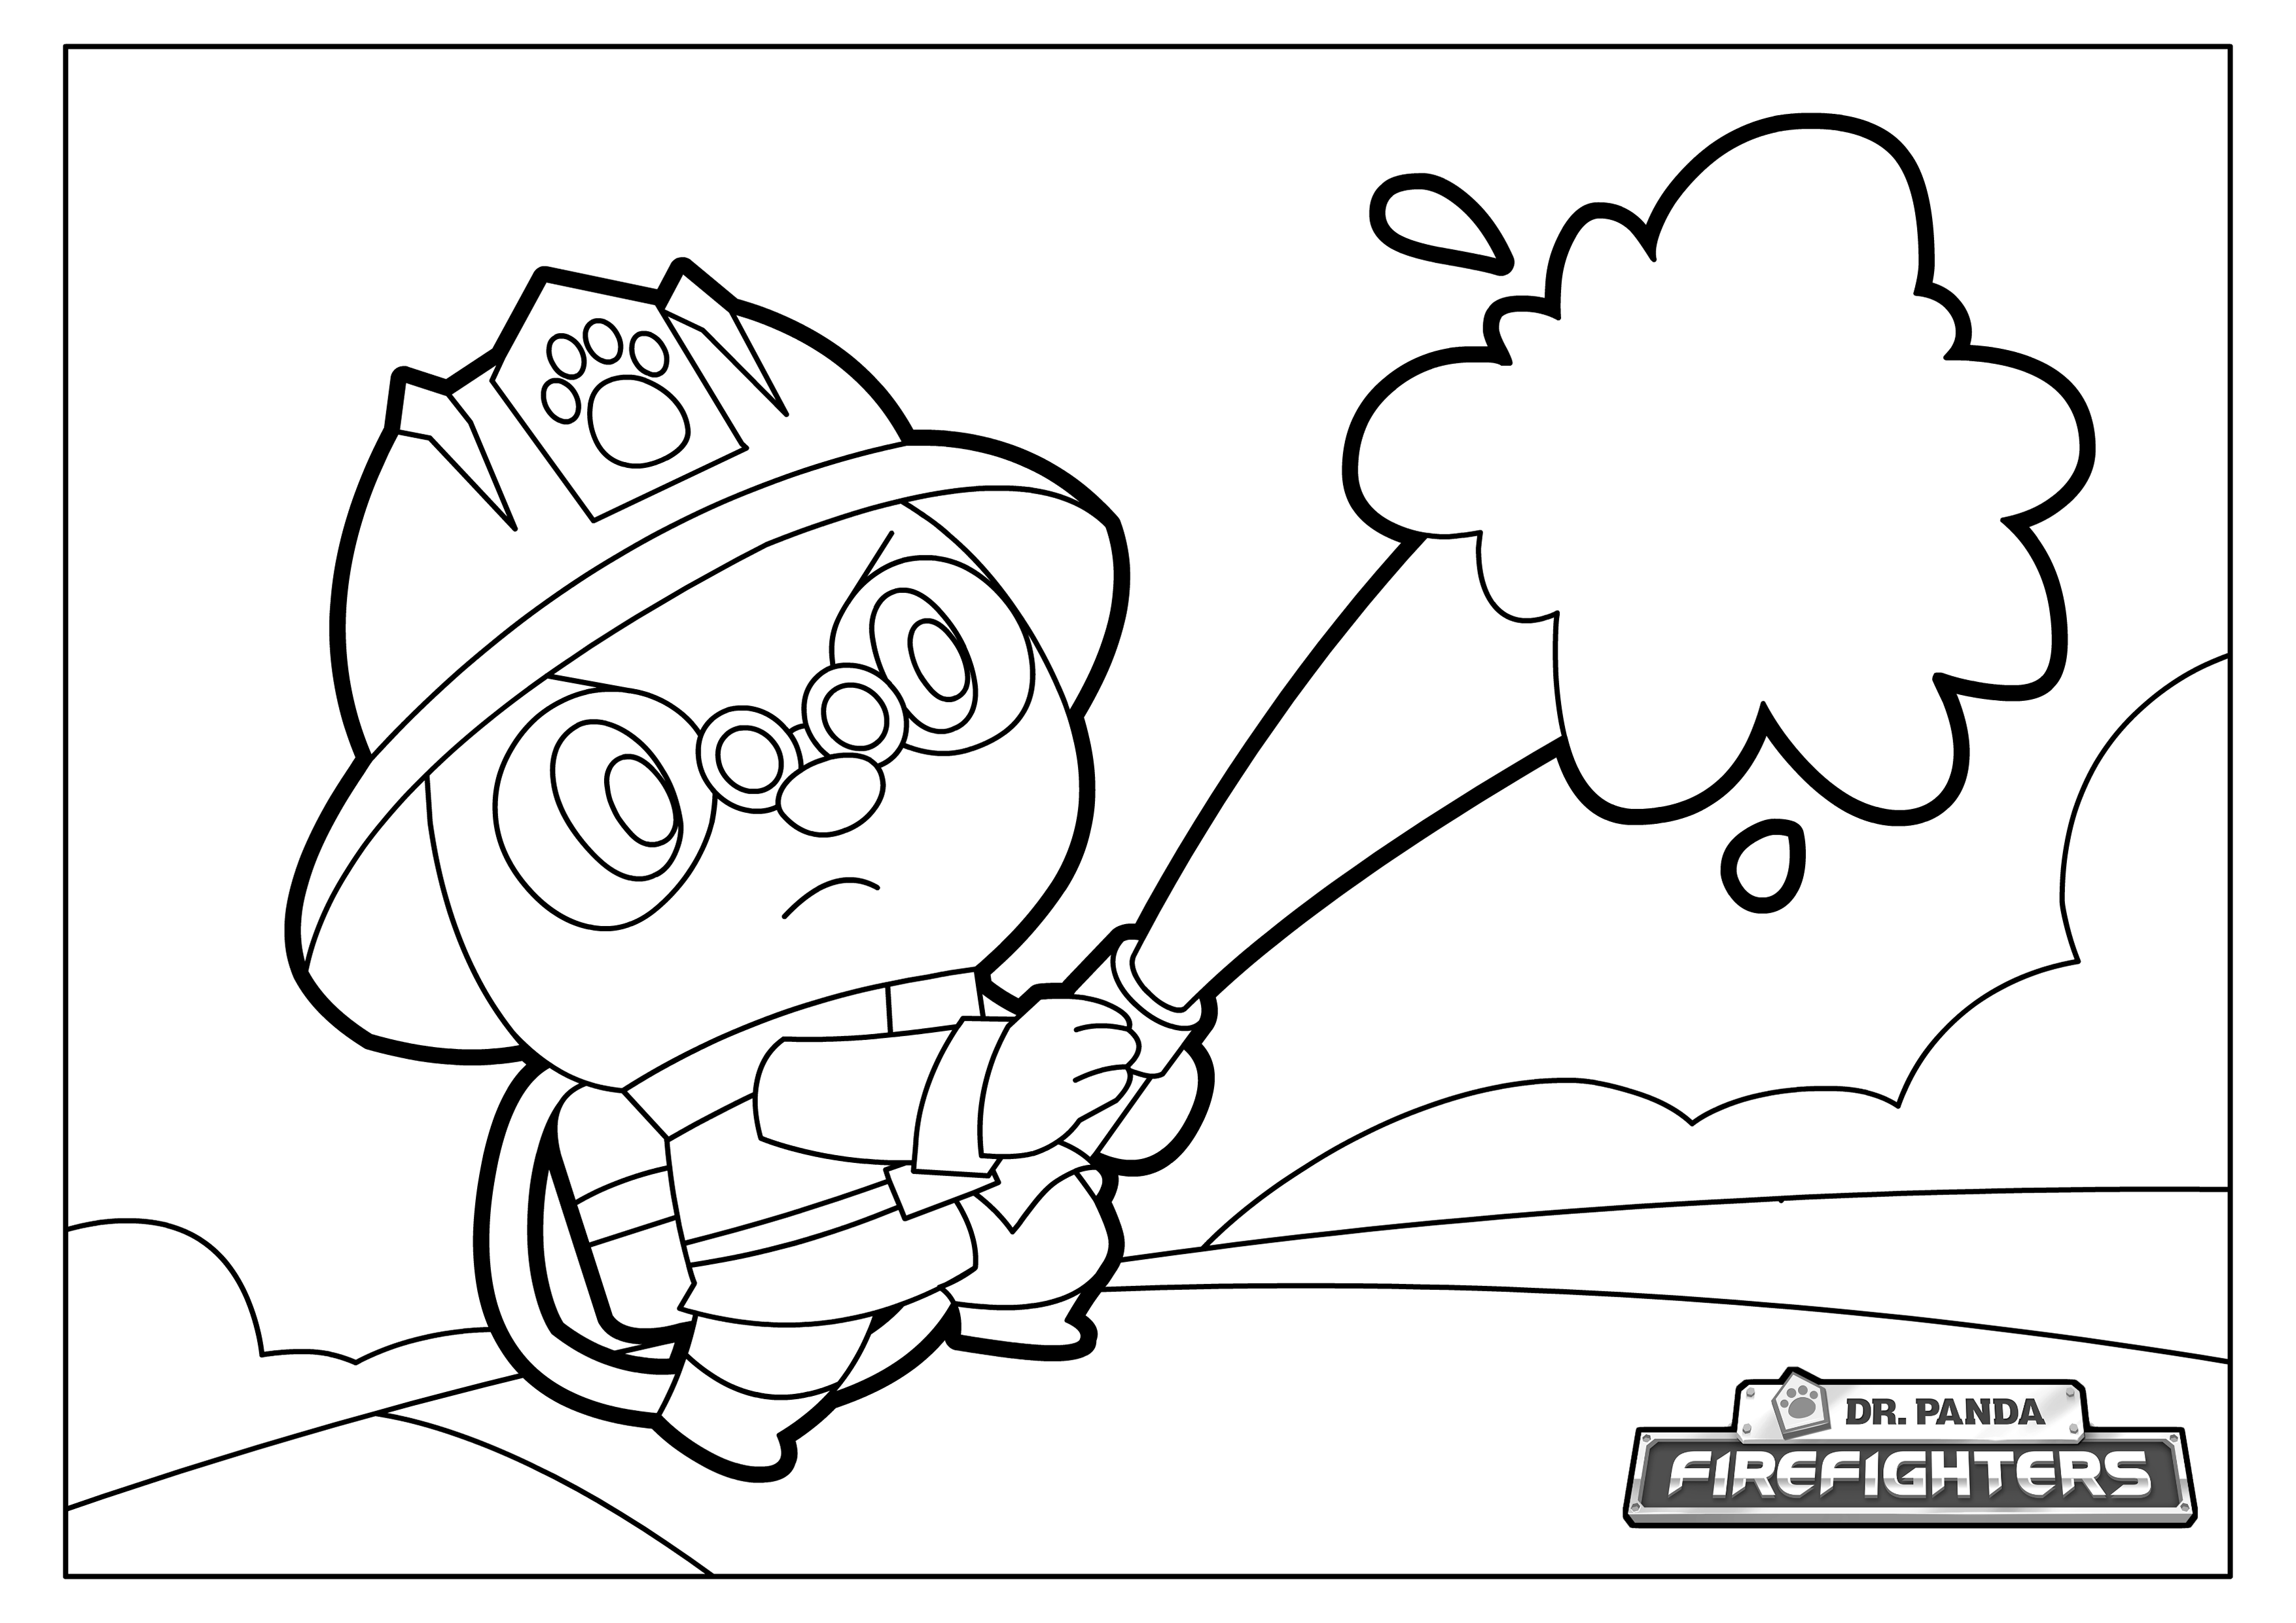 We Have Some Dr Panda Firefighters Coloring Pages For You To Print And Enjoy With Your Kids Fill Them In With Your Best And Brigh Pagine Da Colorare Colori [ 2480 x 3508 Pixel ]